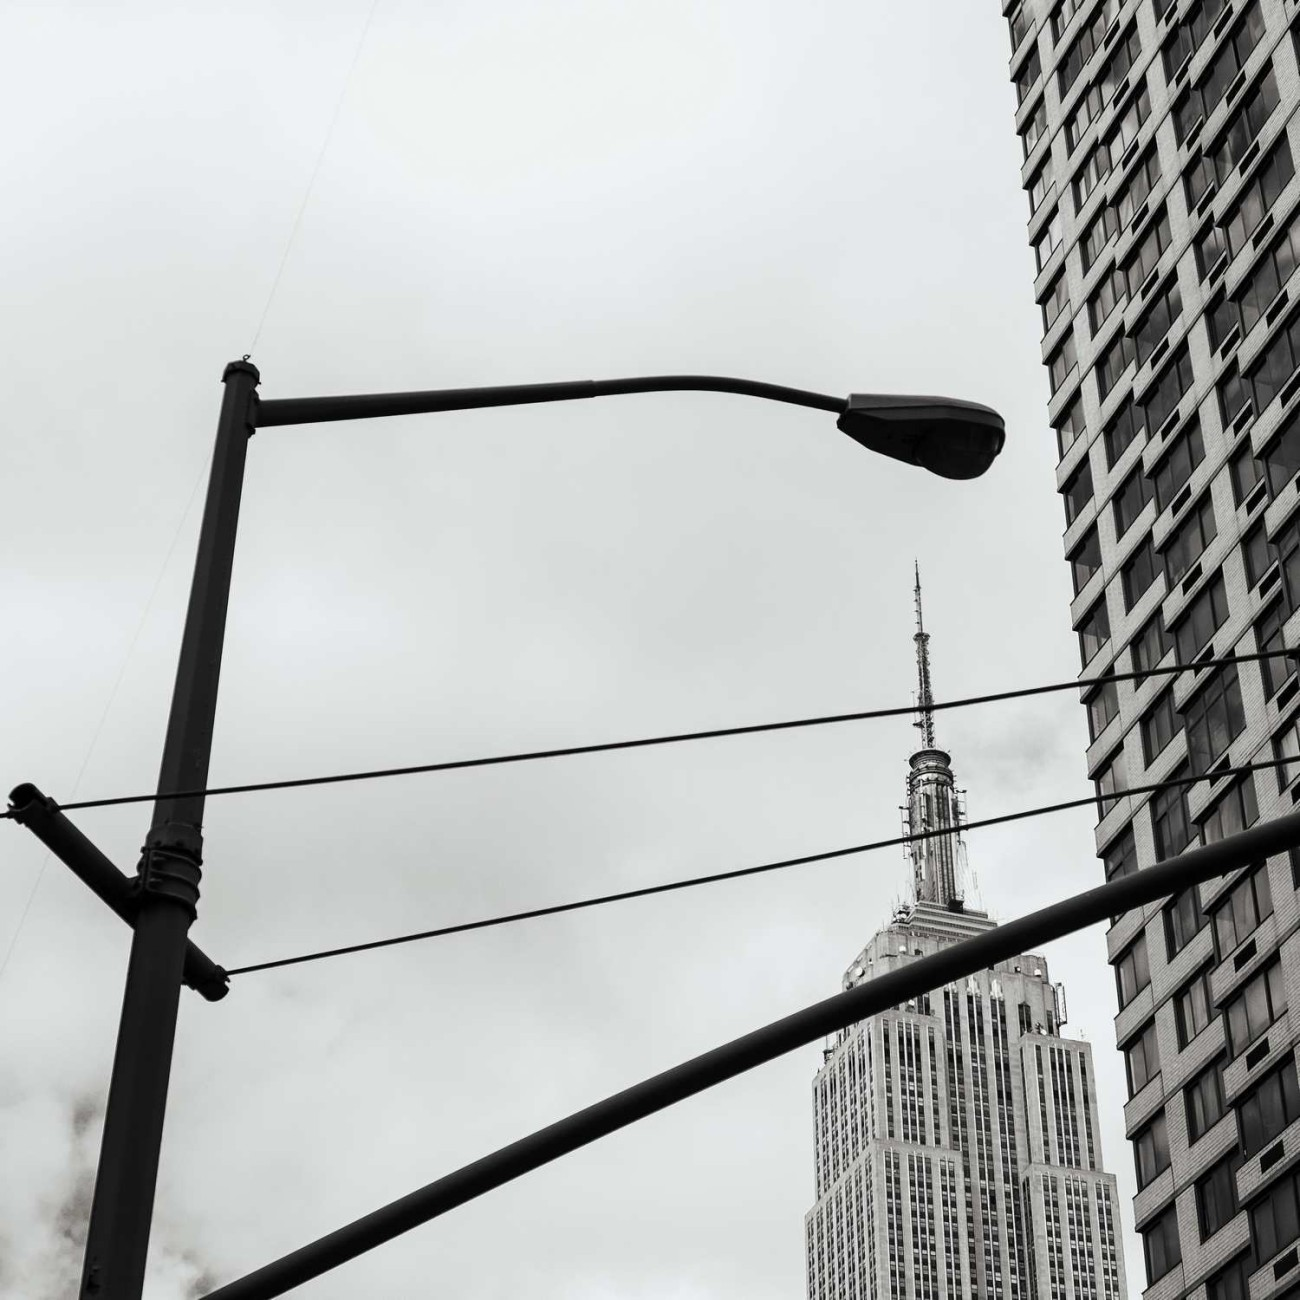 Empire State Building and lamp post, New York, 2014